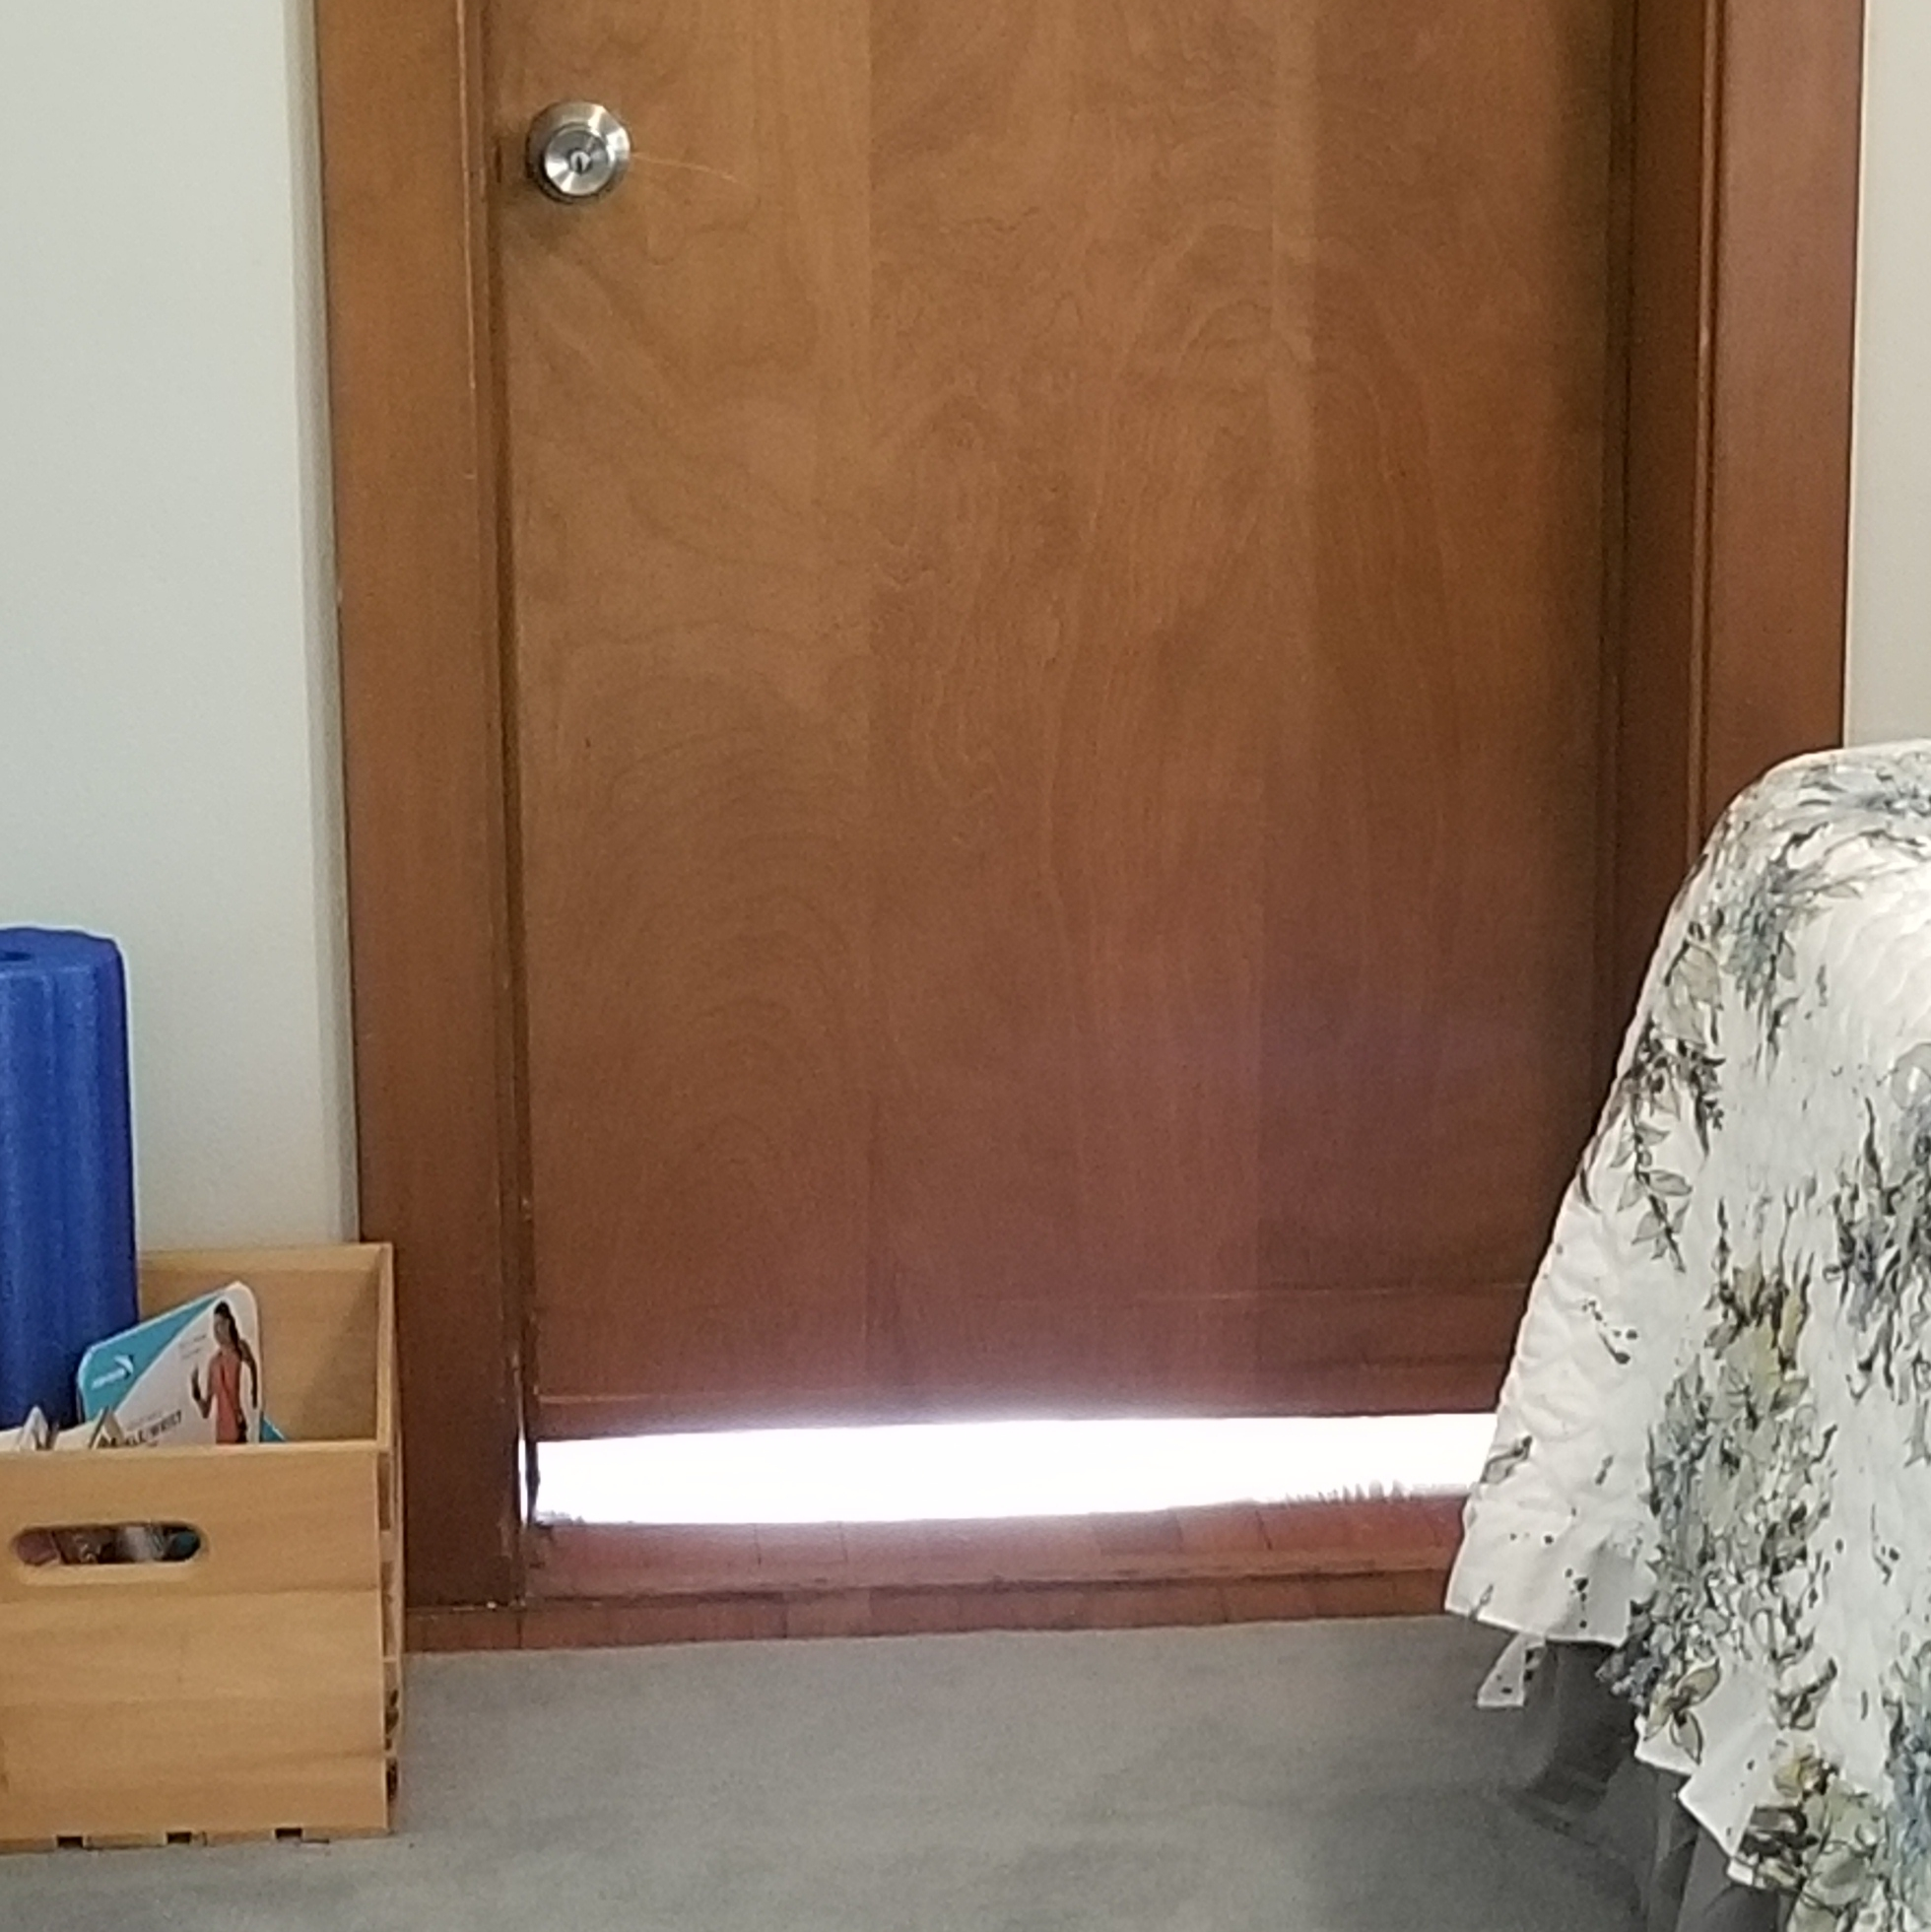 Photo of closed door in a house with light shining under it.